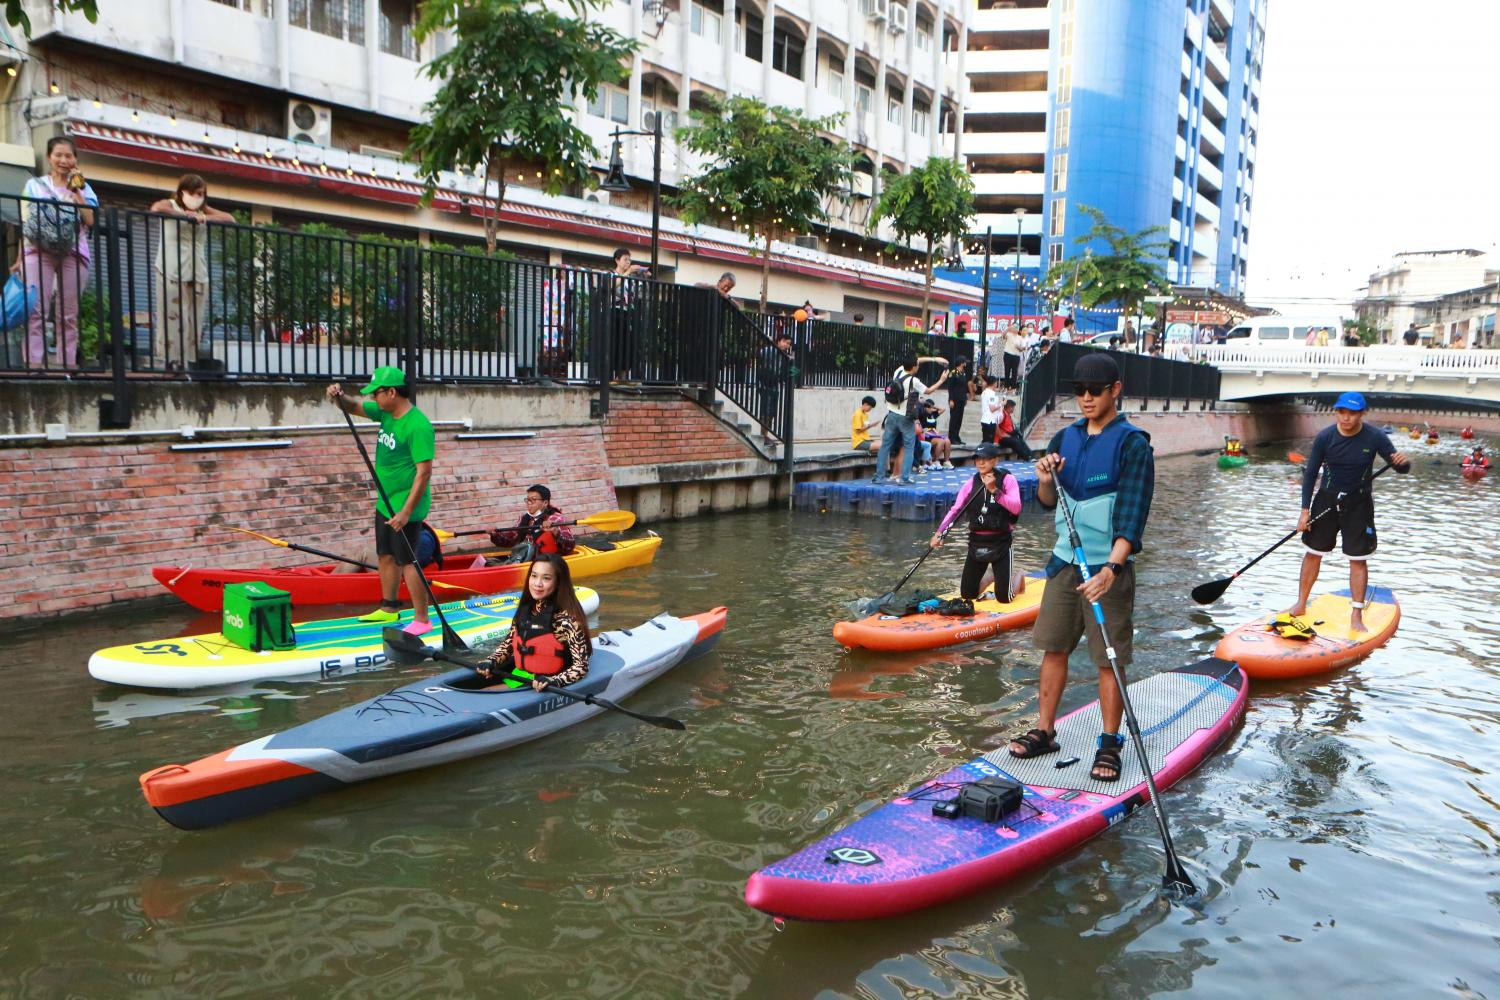 People go kayaking and paddleboarding in Klong Ong Ang. The historic canal in central Bangkok has been cleaned and its banks landscaped to attract visitors. Somchai Poomlard